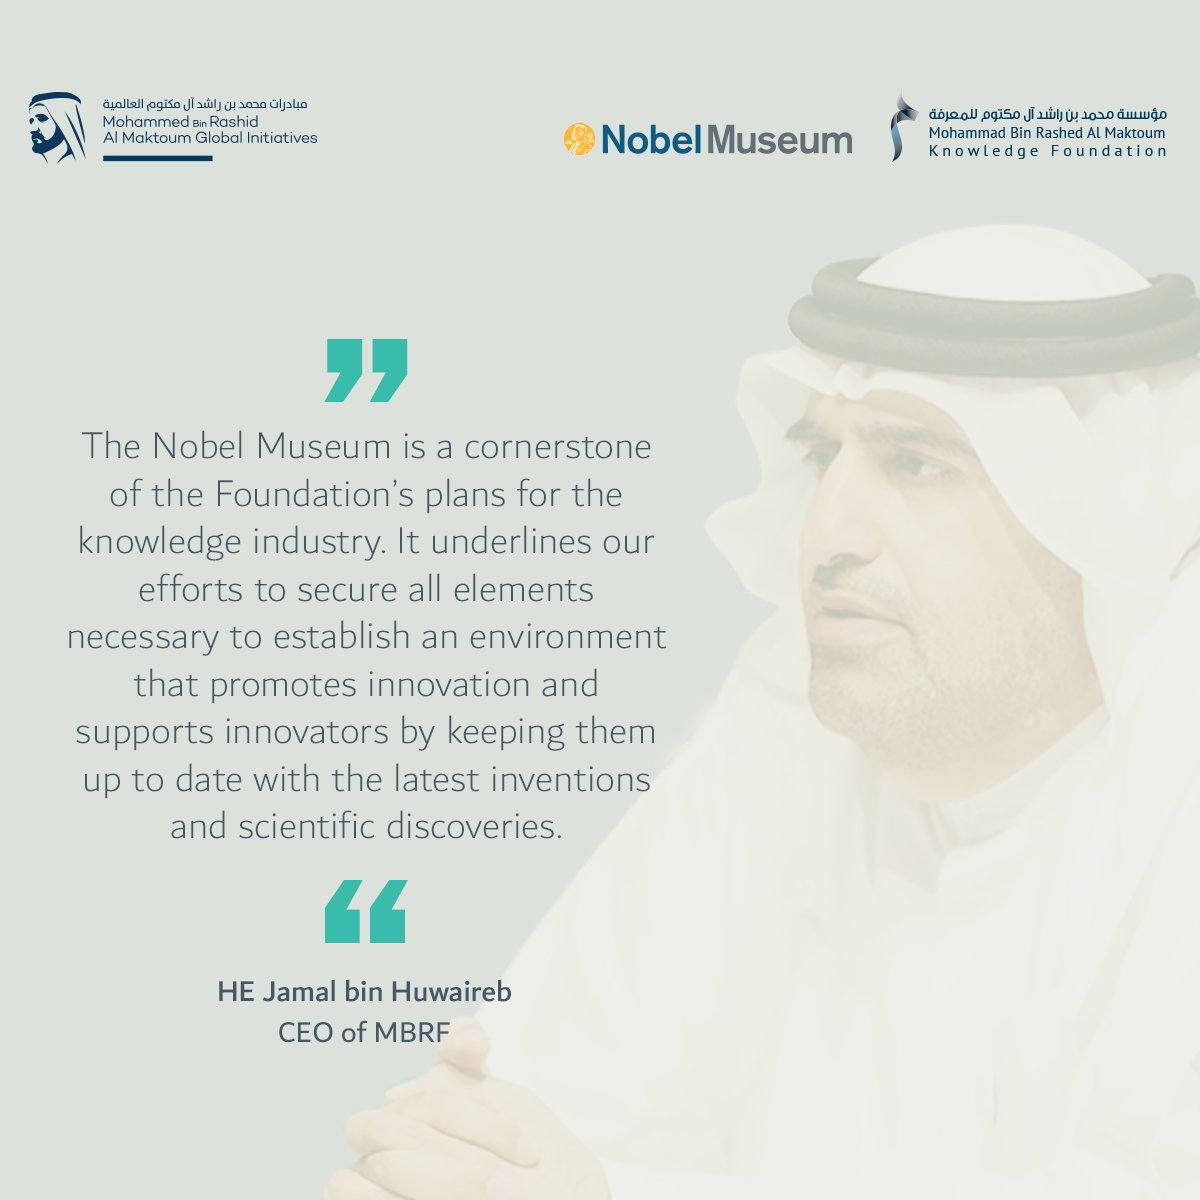 HE Jamal bin Huwaireb, CEO of #MBRF, explains the prominence of the #NobelMuseum in spreading knowledge, science and culture in #UAE society<br>http://pic.twitter.com/SEyM6Mx8do